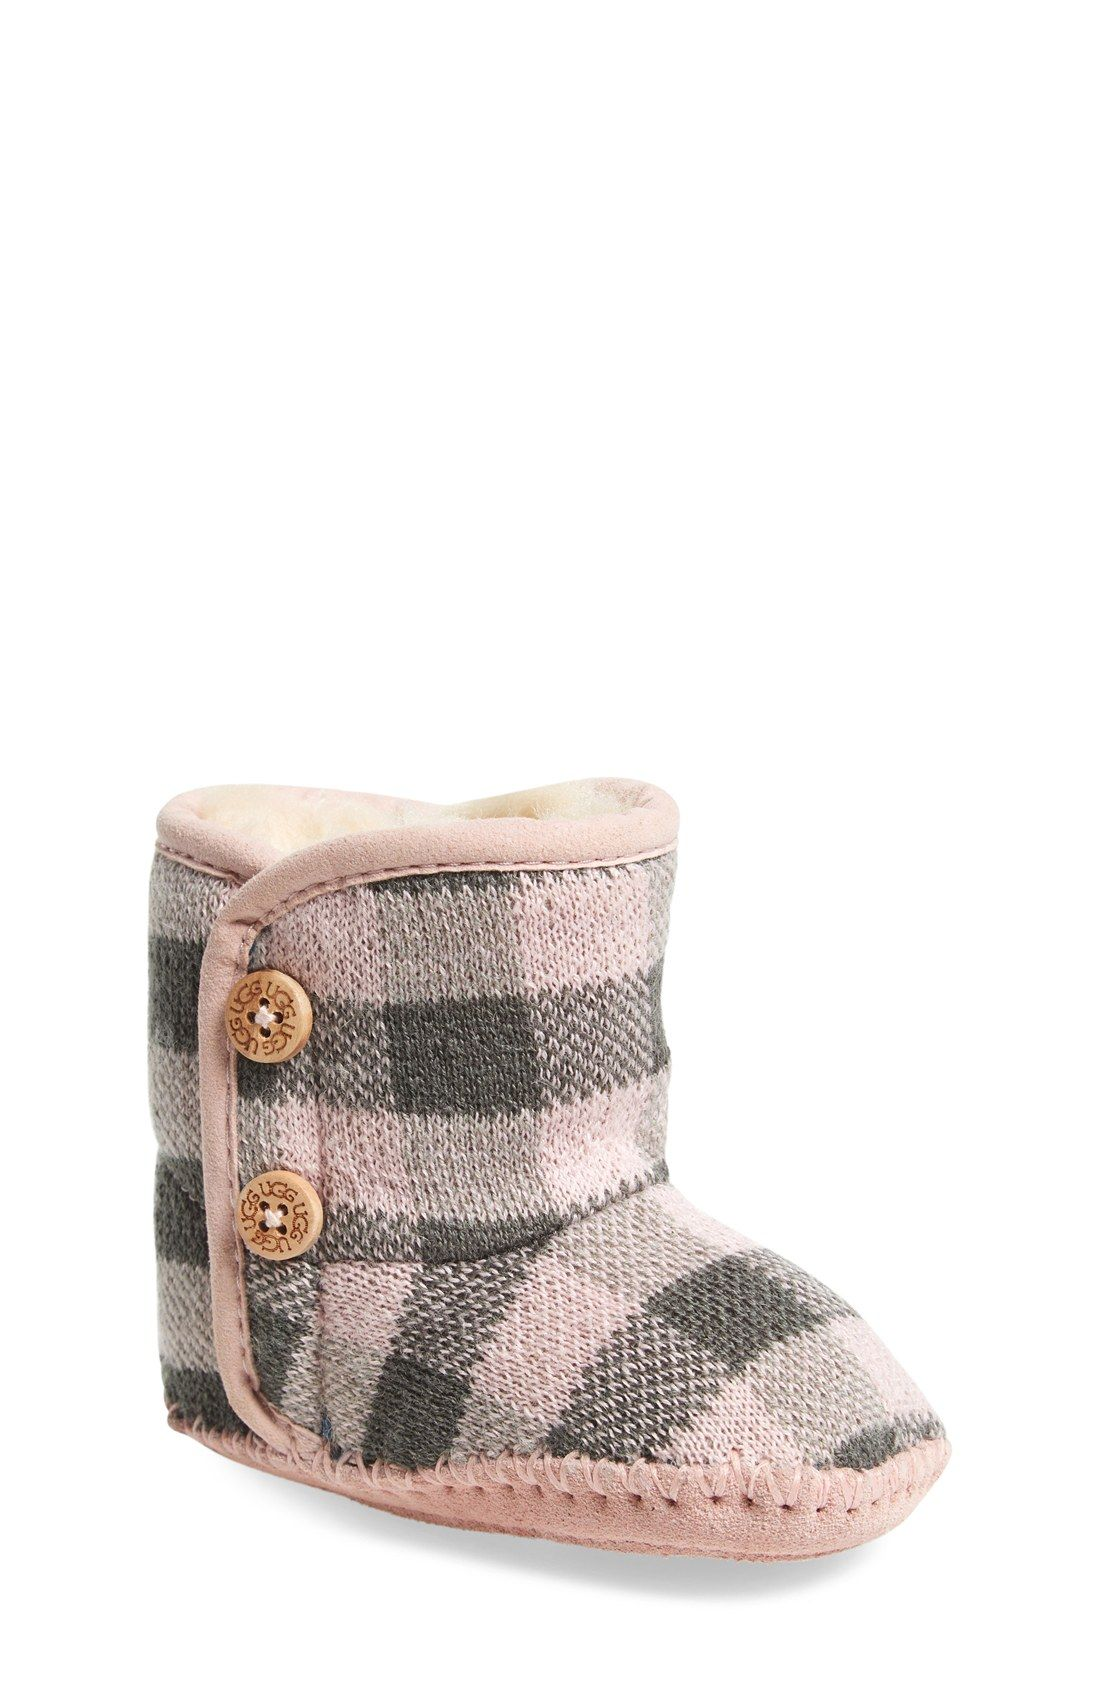 Crushing on these baby UGG booties that are cozy and cute! The pink and grey plaid adds a fun pattern to these knit slippers with wood buttons.